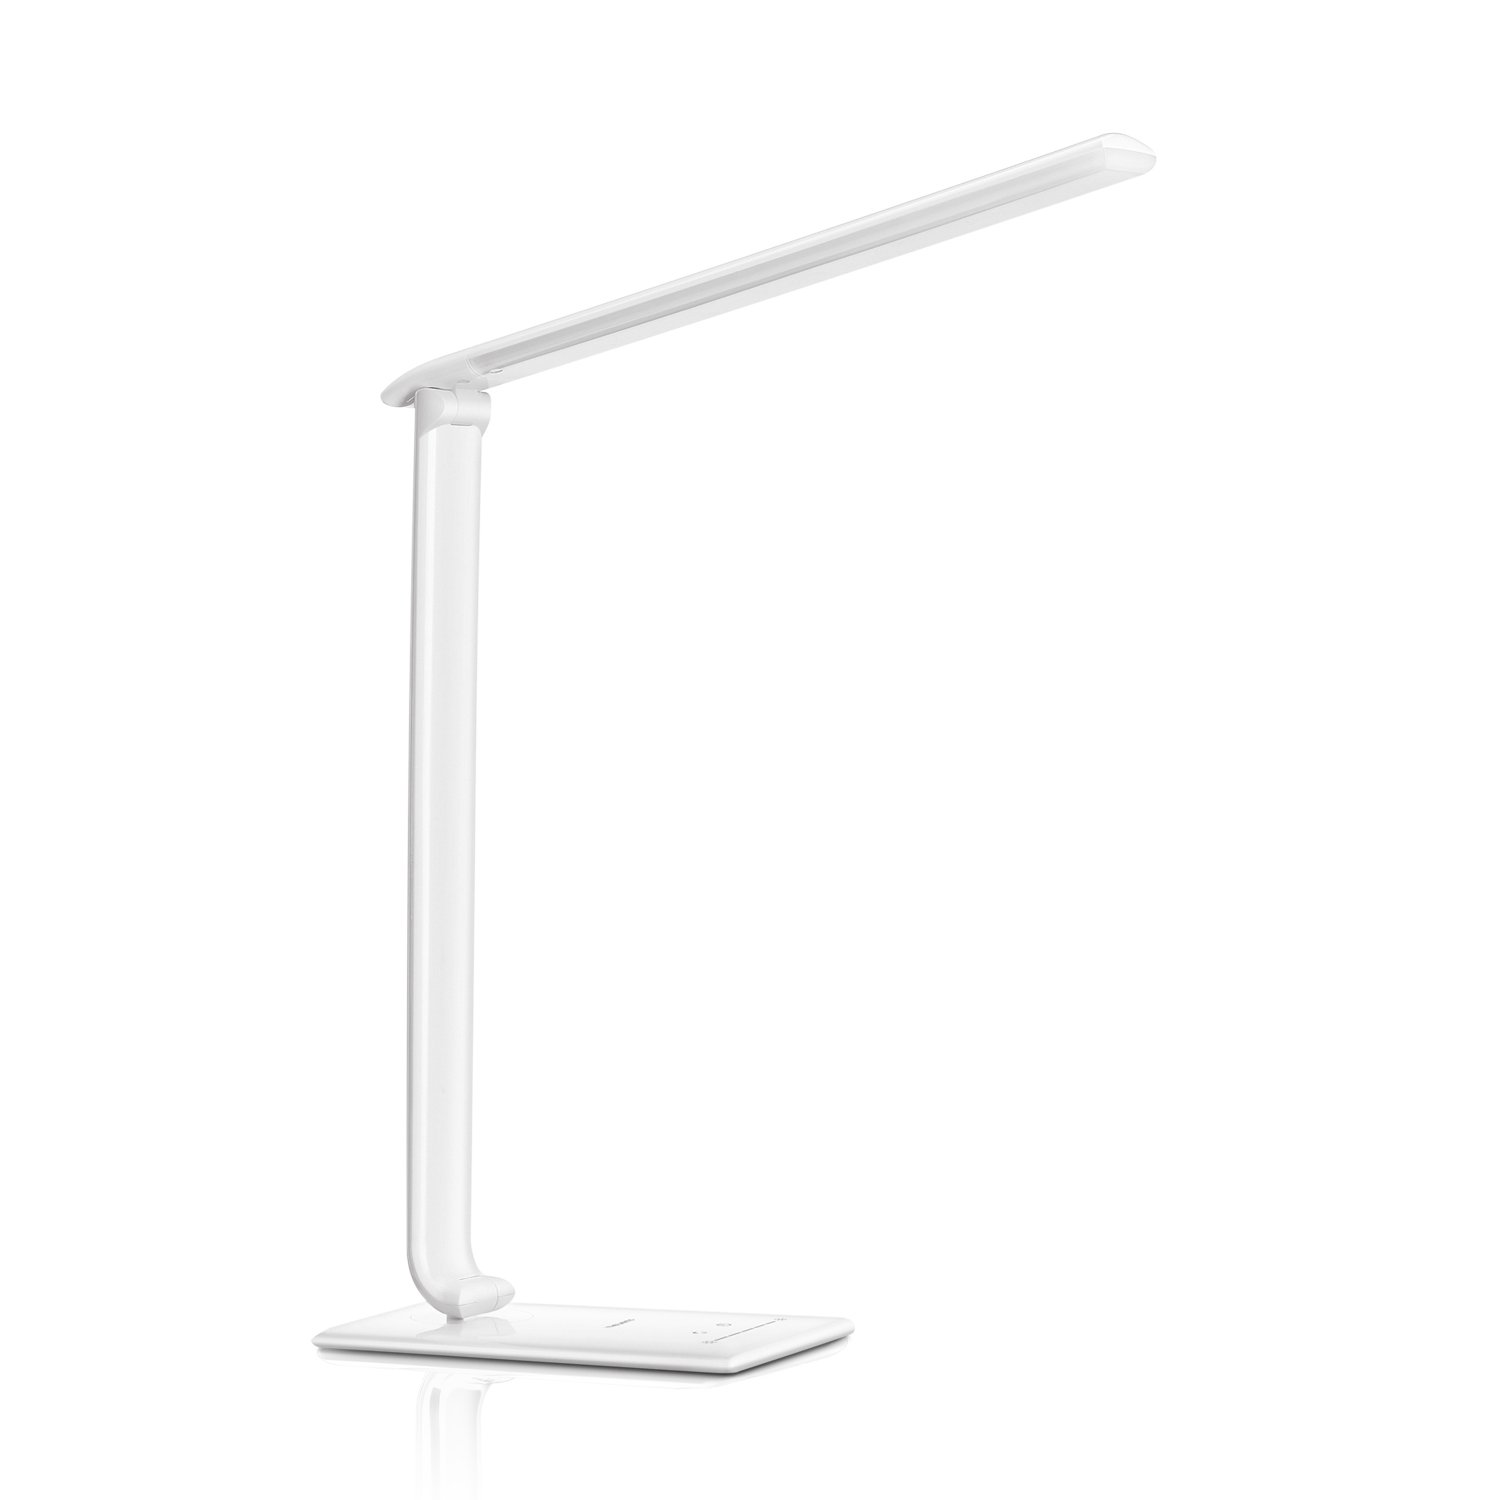 Dimmable LED Desk Lamp with USB Charging Port, Rechargeable Touch Control Table Reading Lamp, Foldable Office Light with Natural Light, Eye-Caring Task Lamp for Painting/Bedroom/College/Office